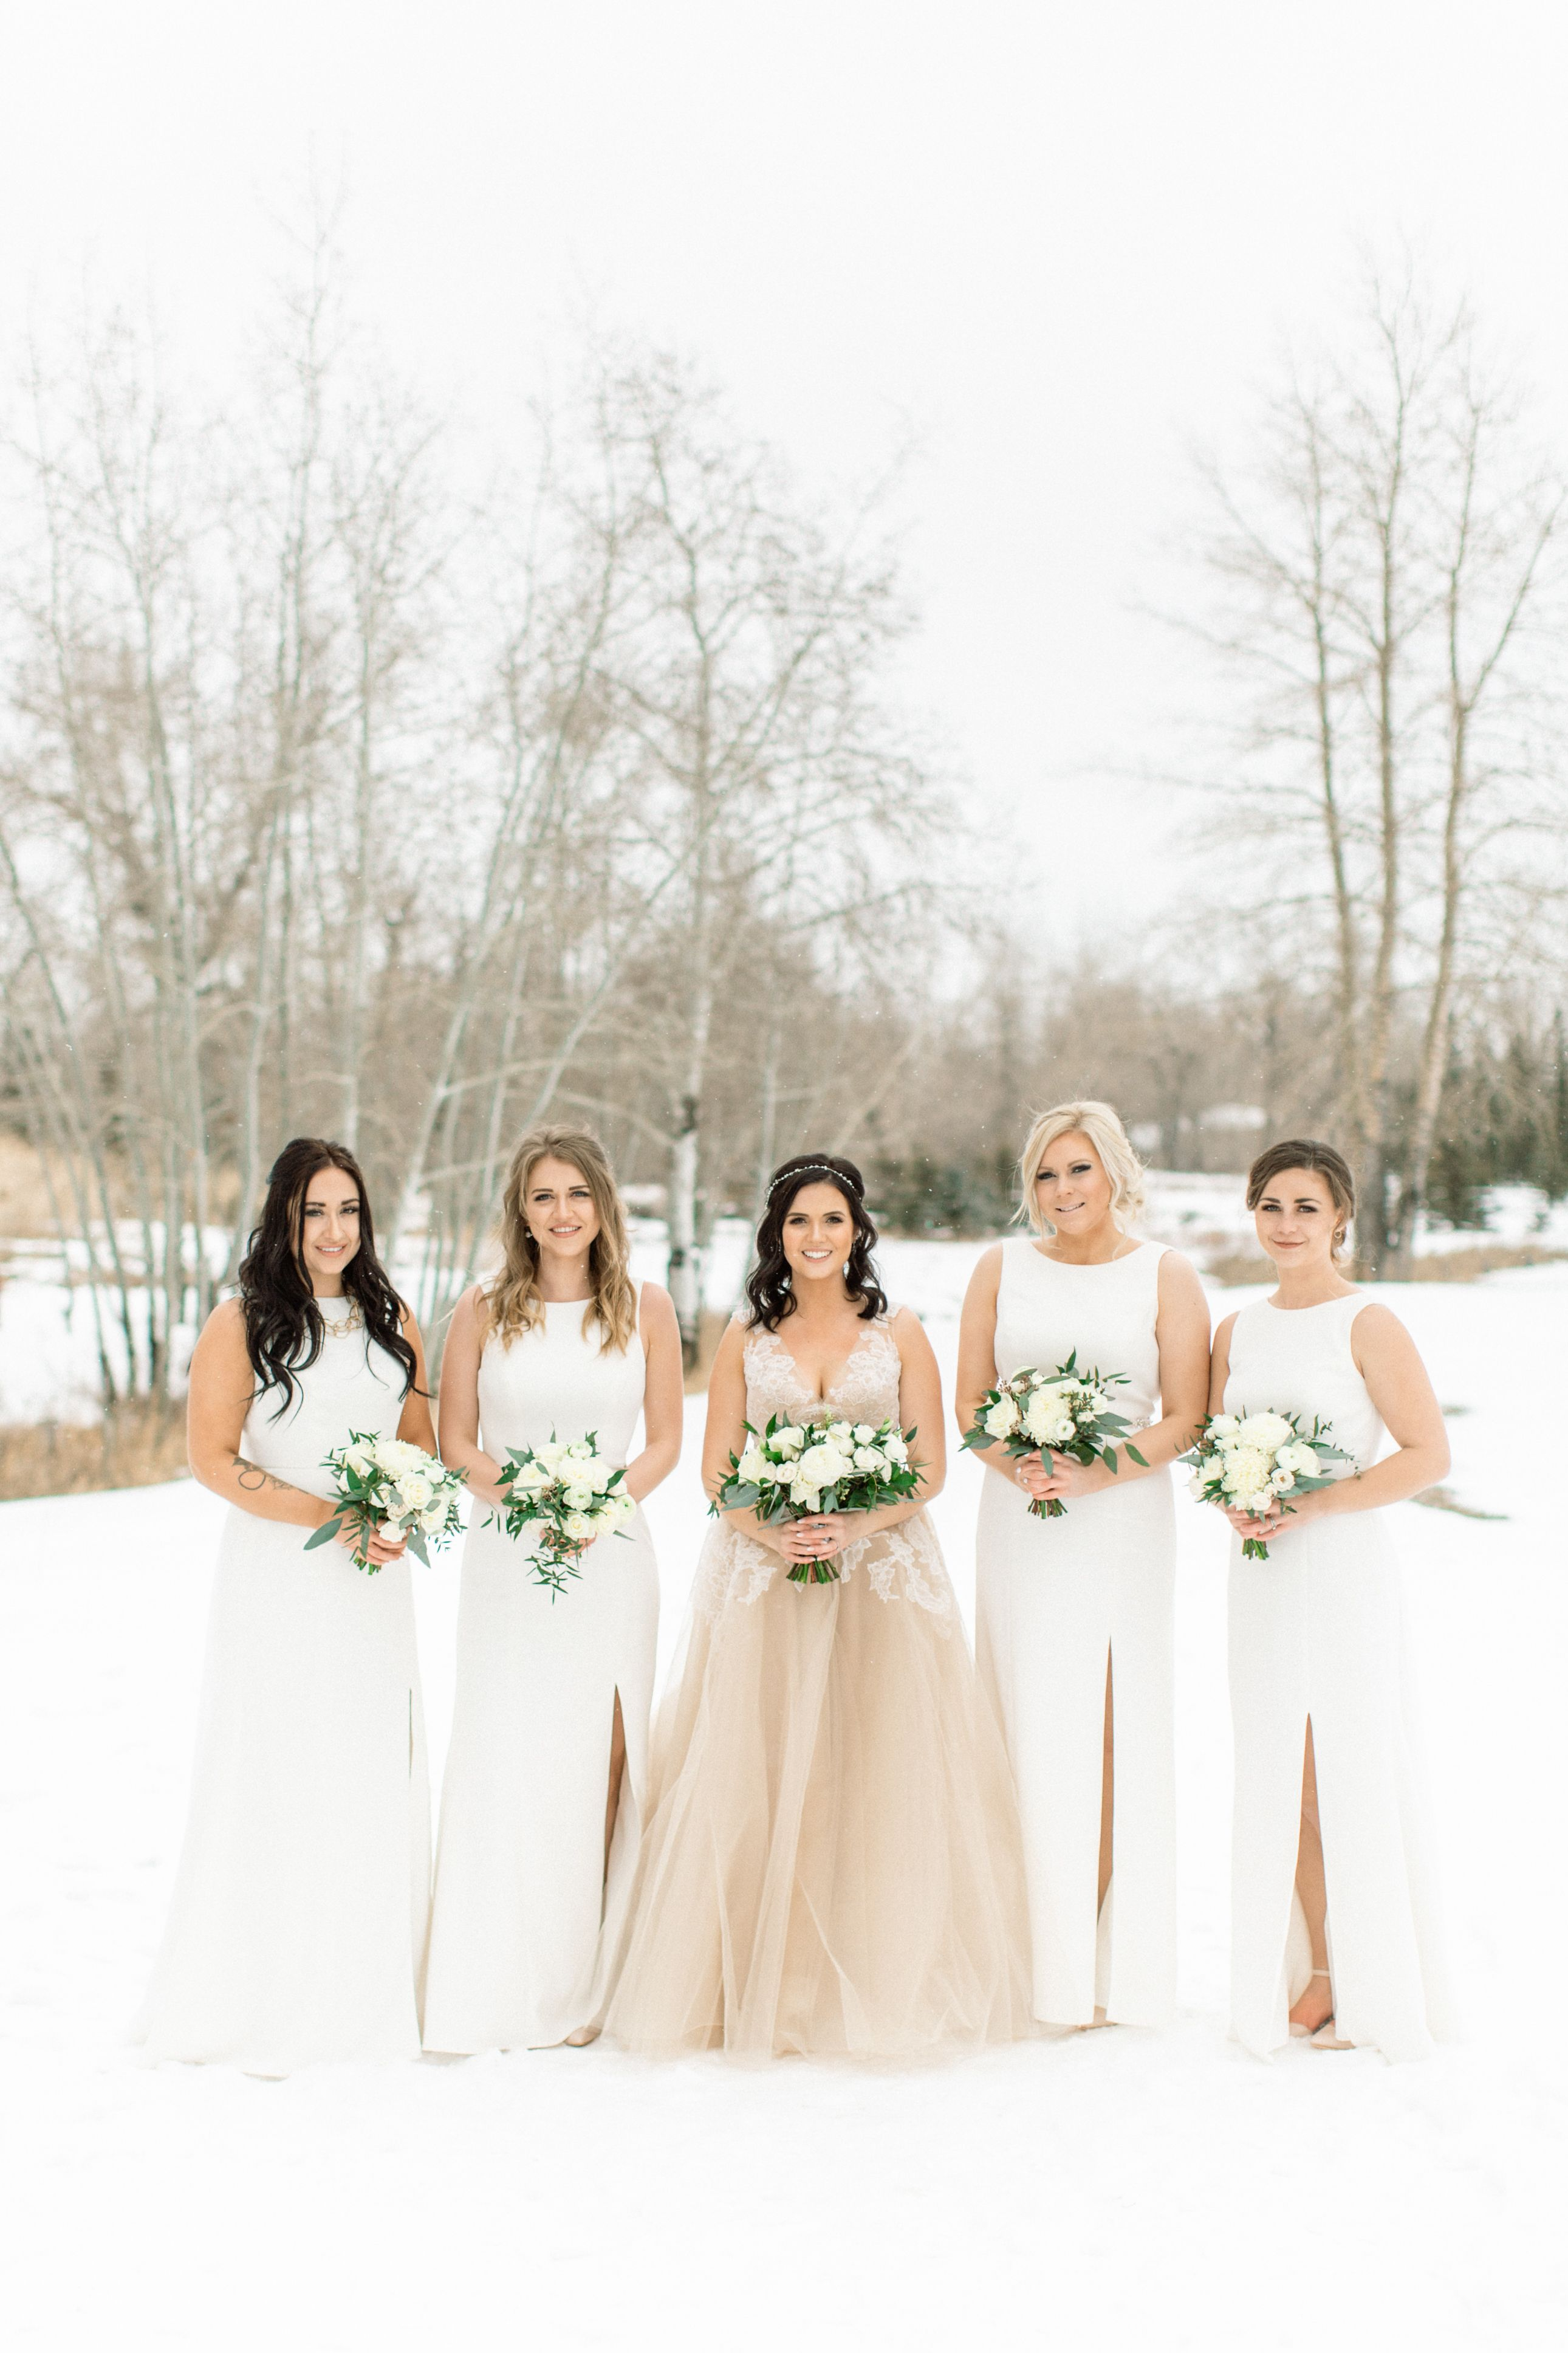 Our Beautiful Winter Bride Work A Champagne Bridal Gown And Her